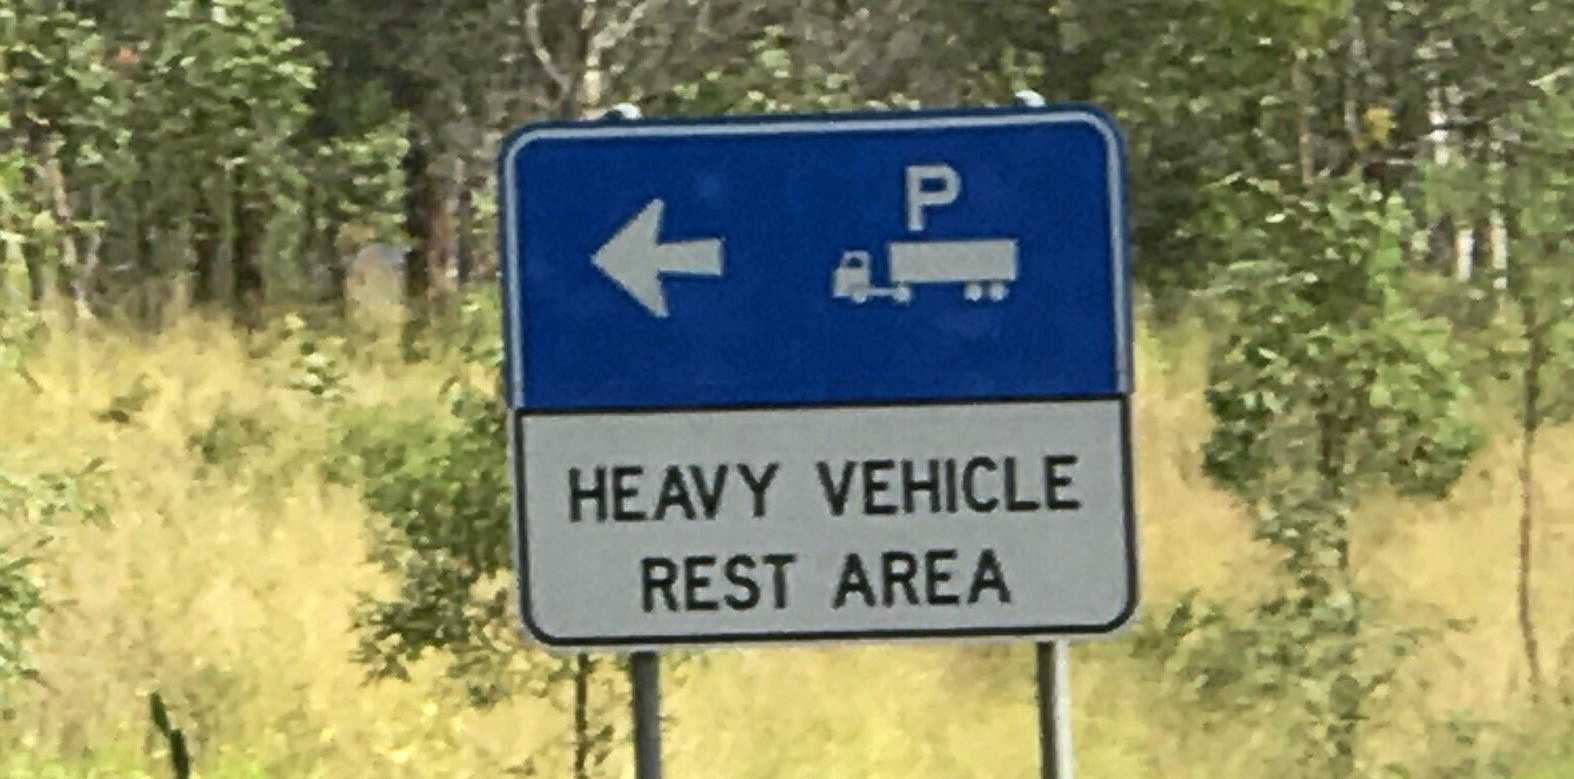 What do you want in a parking area?